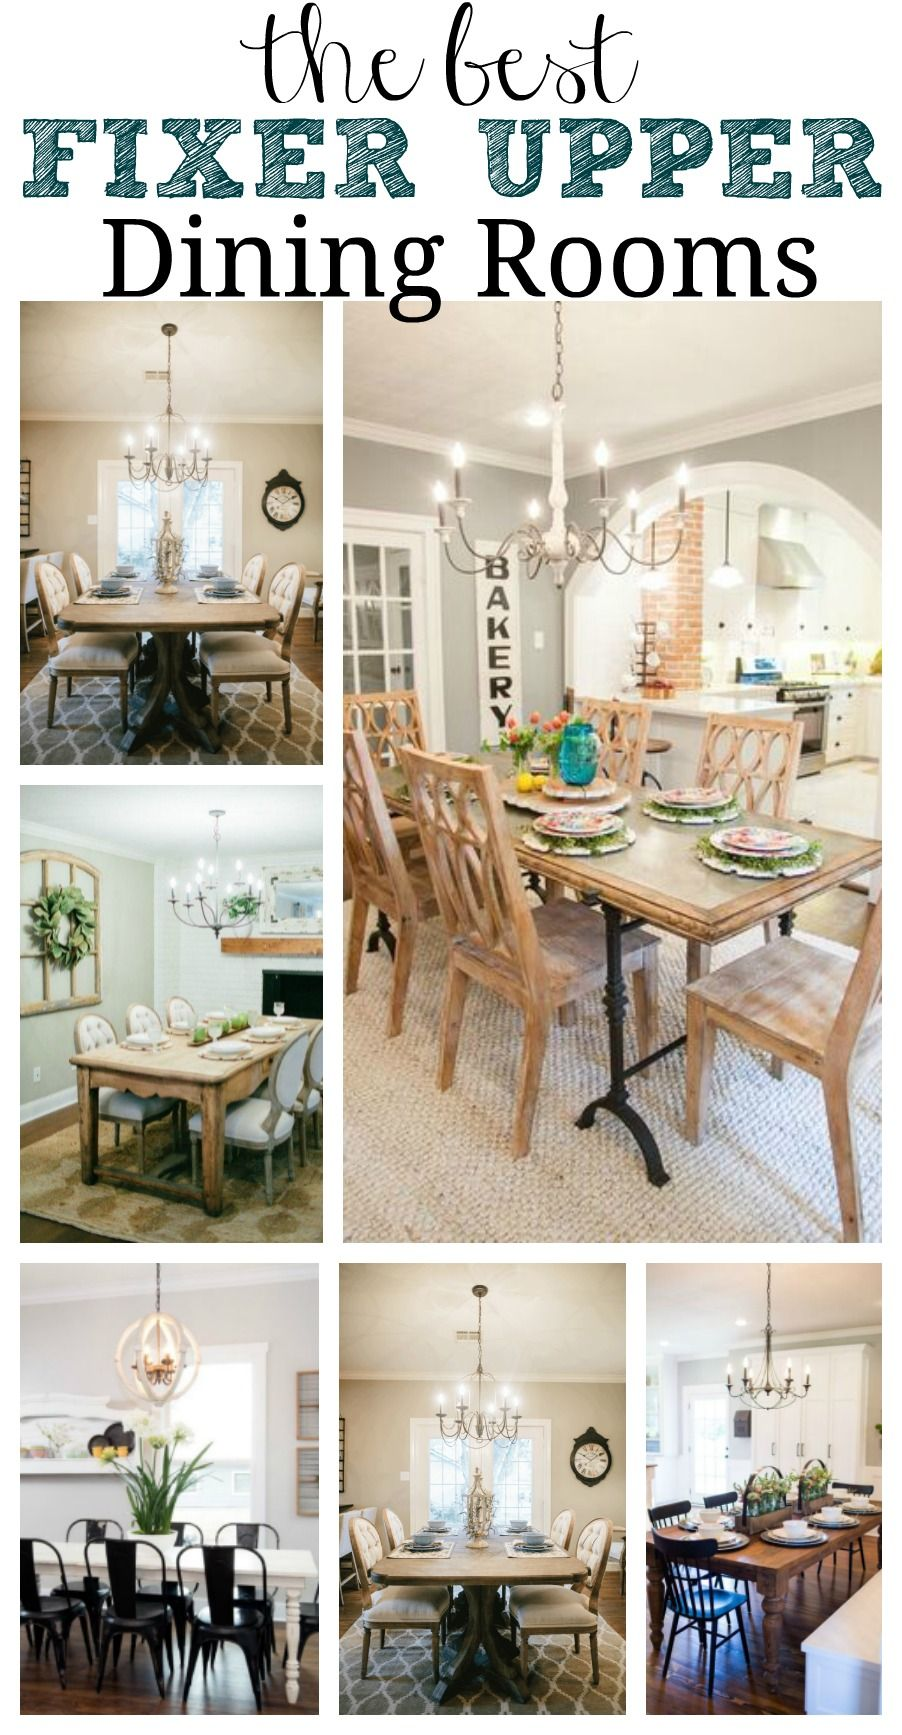 chip and joanna gaines decorator ideas for dining rooms